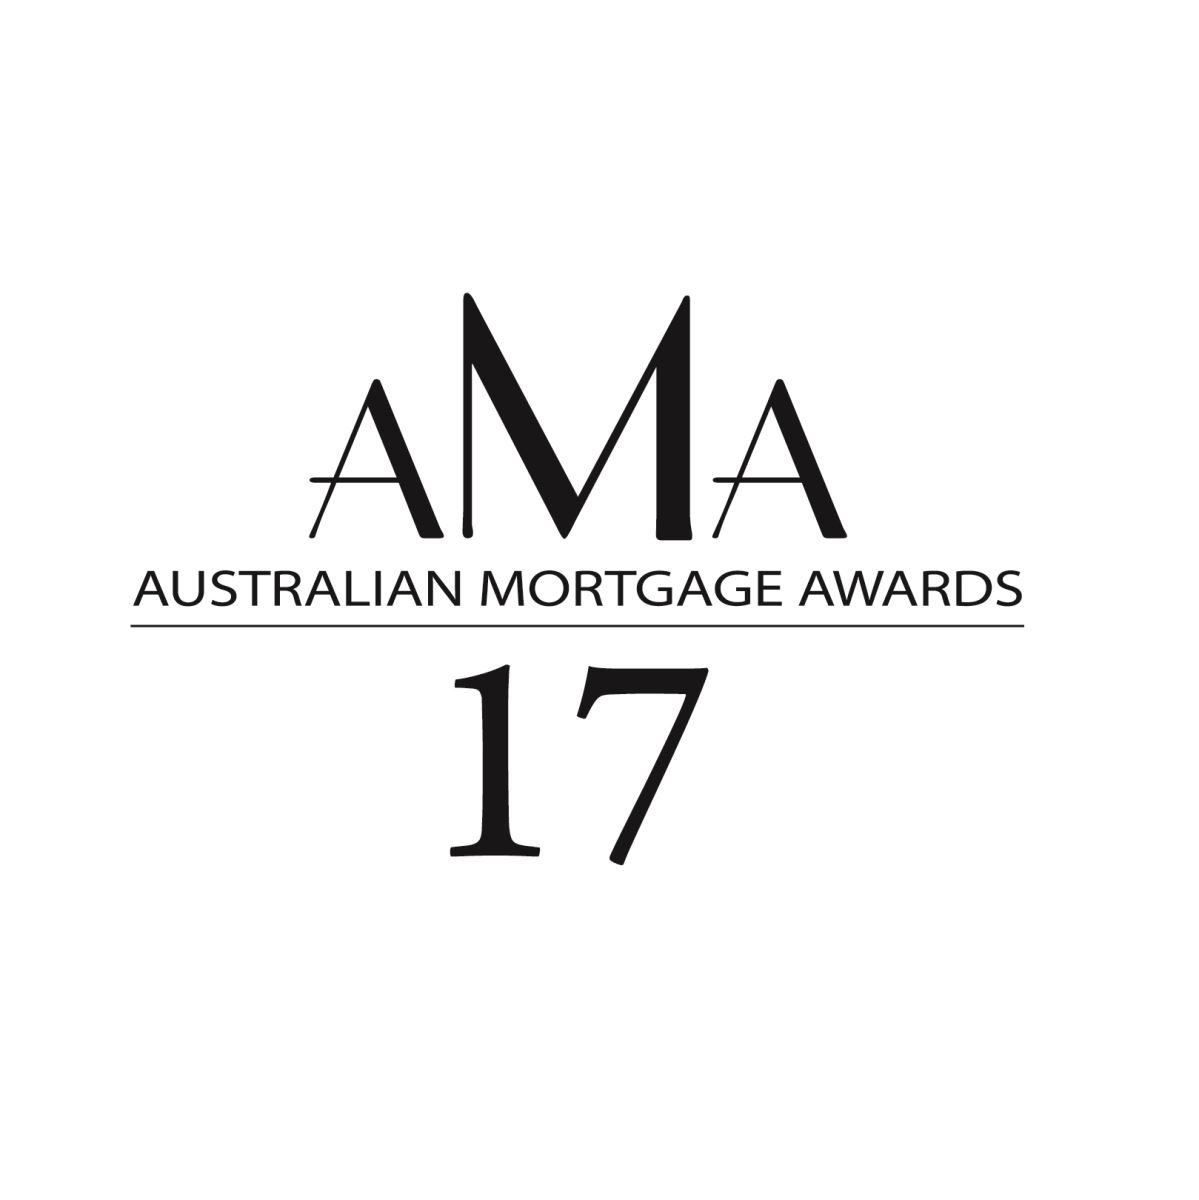 Australia's best lenders to be recognised at 2017 AMAs